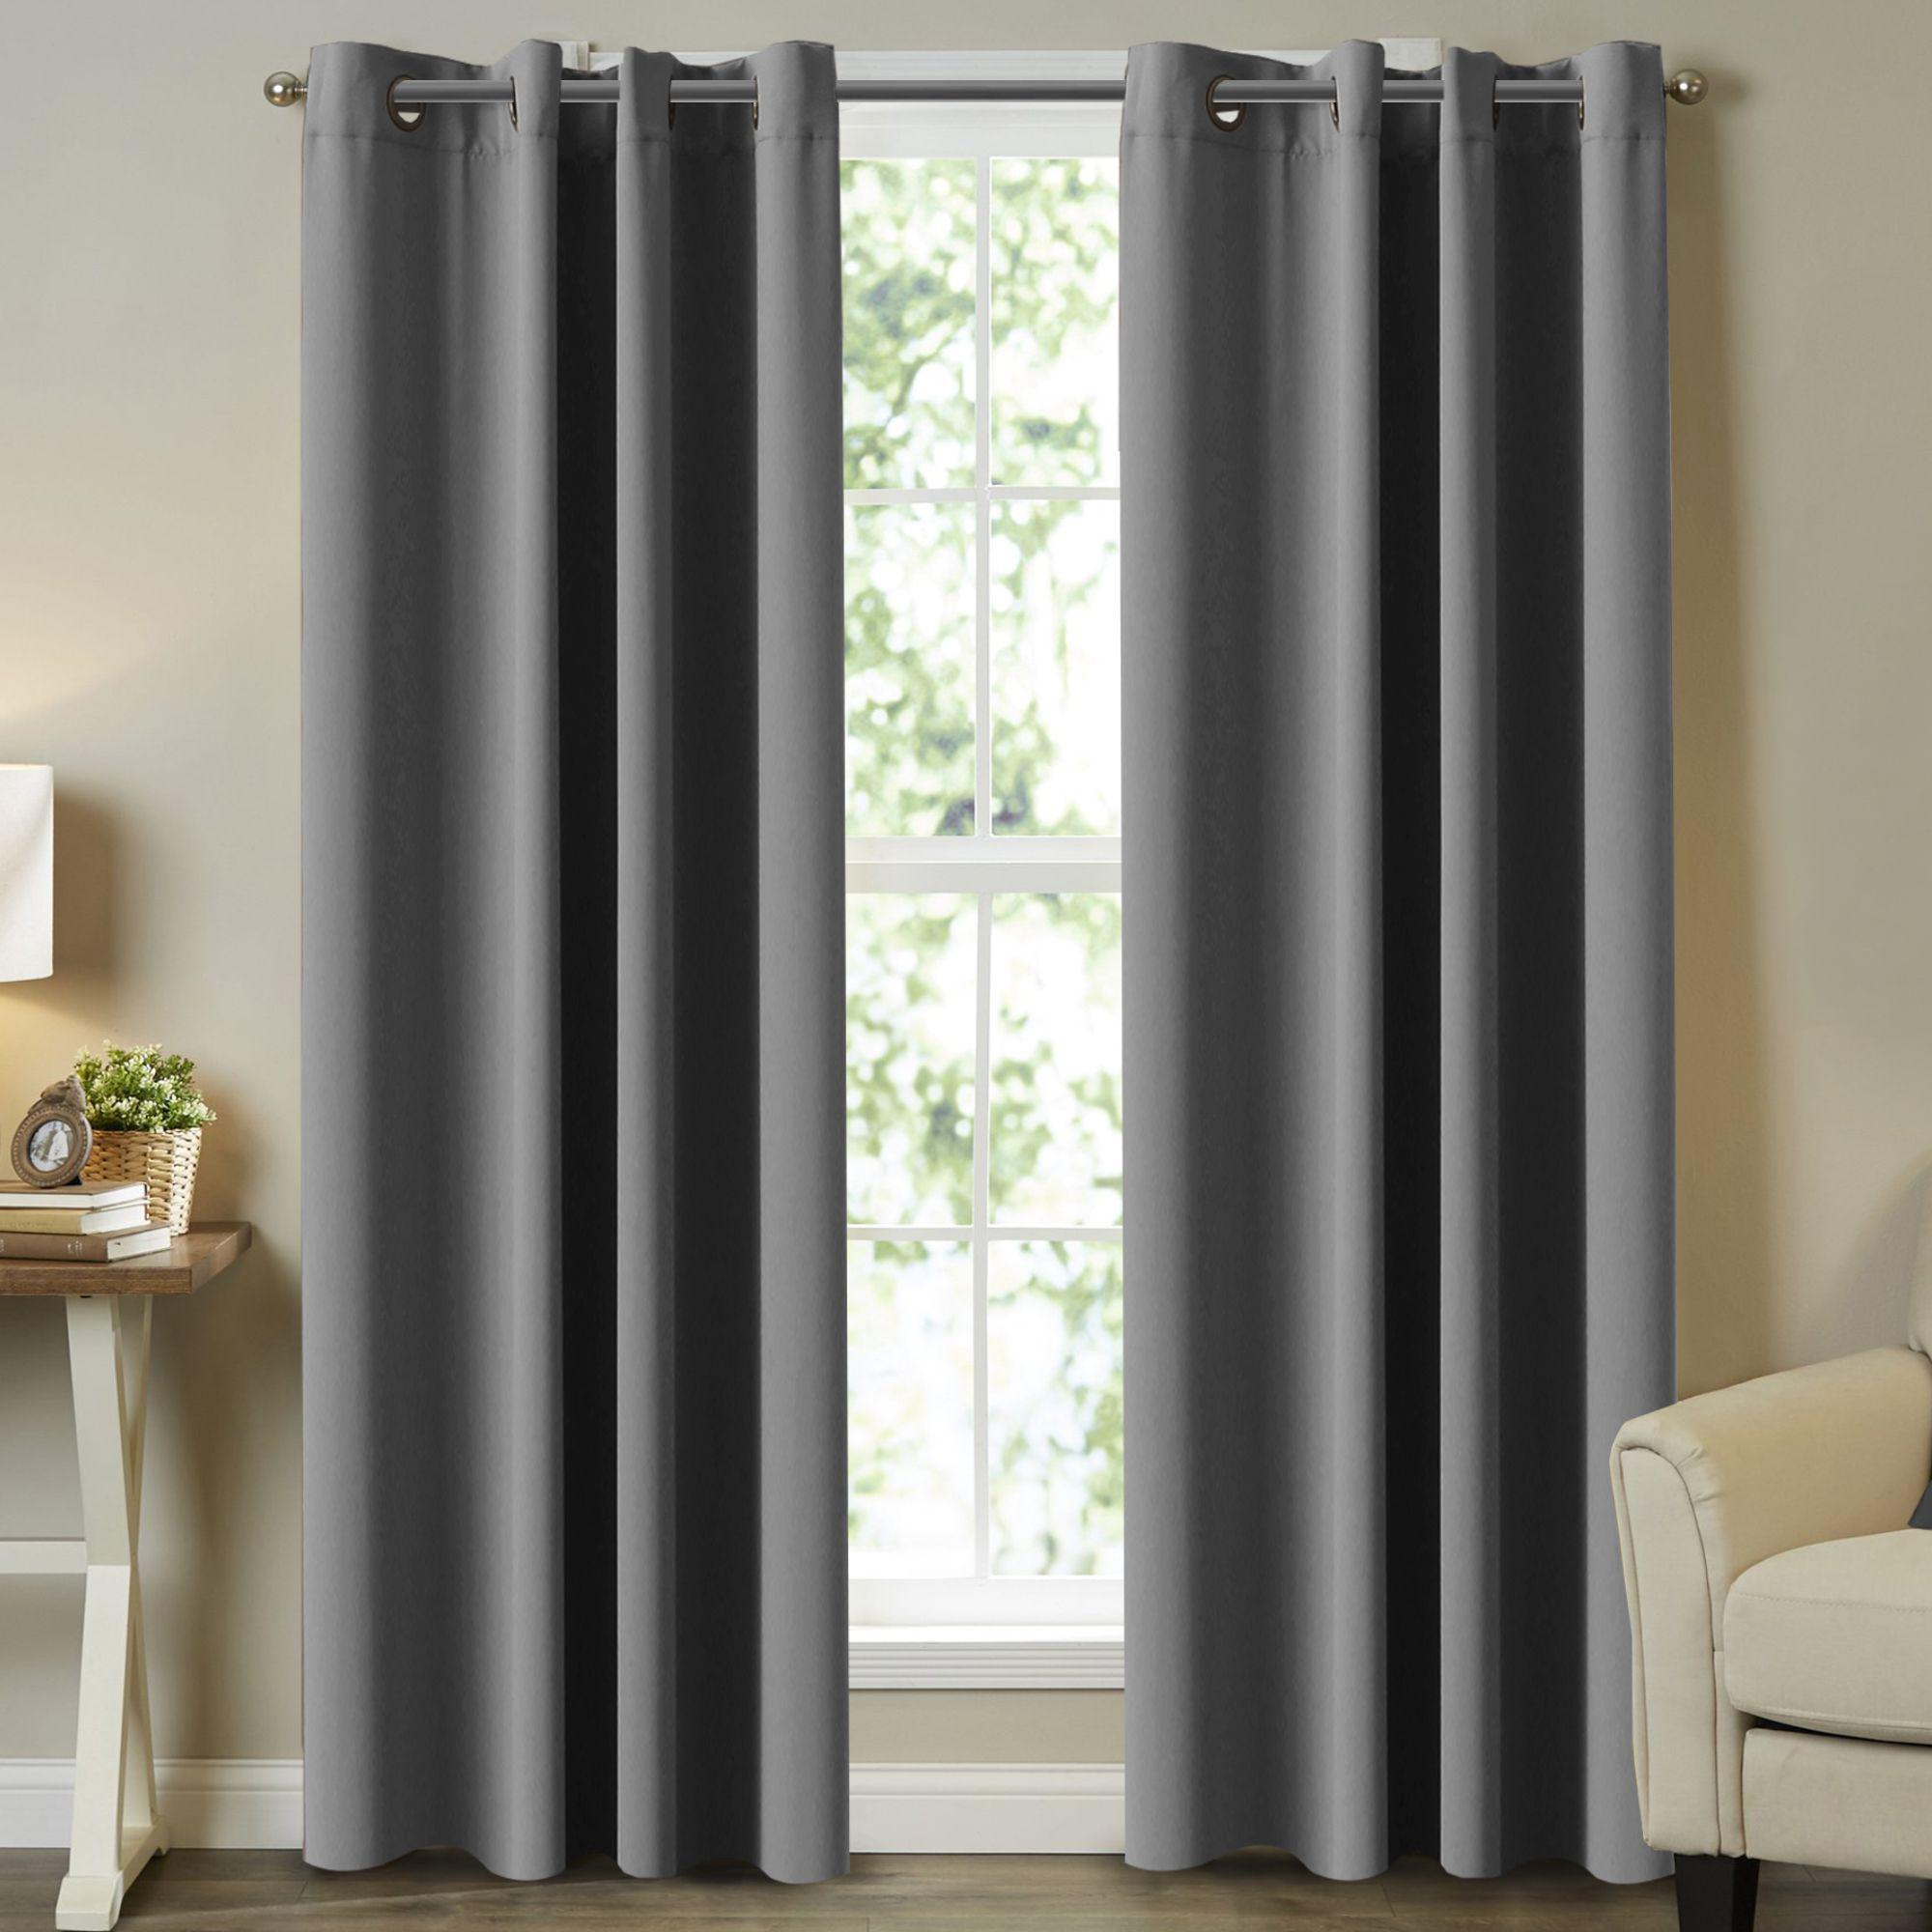 Blackout Pair Curtains Bedroom Grey Color Window Treatment Draperies For Living Room Eyelet Blockout Grey Curtains 2 Panels 4 Sizes Matt Blatt